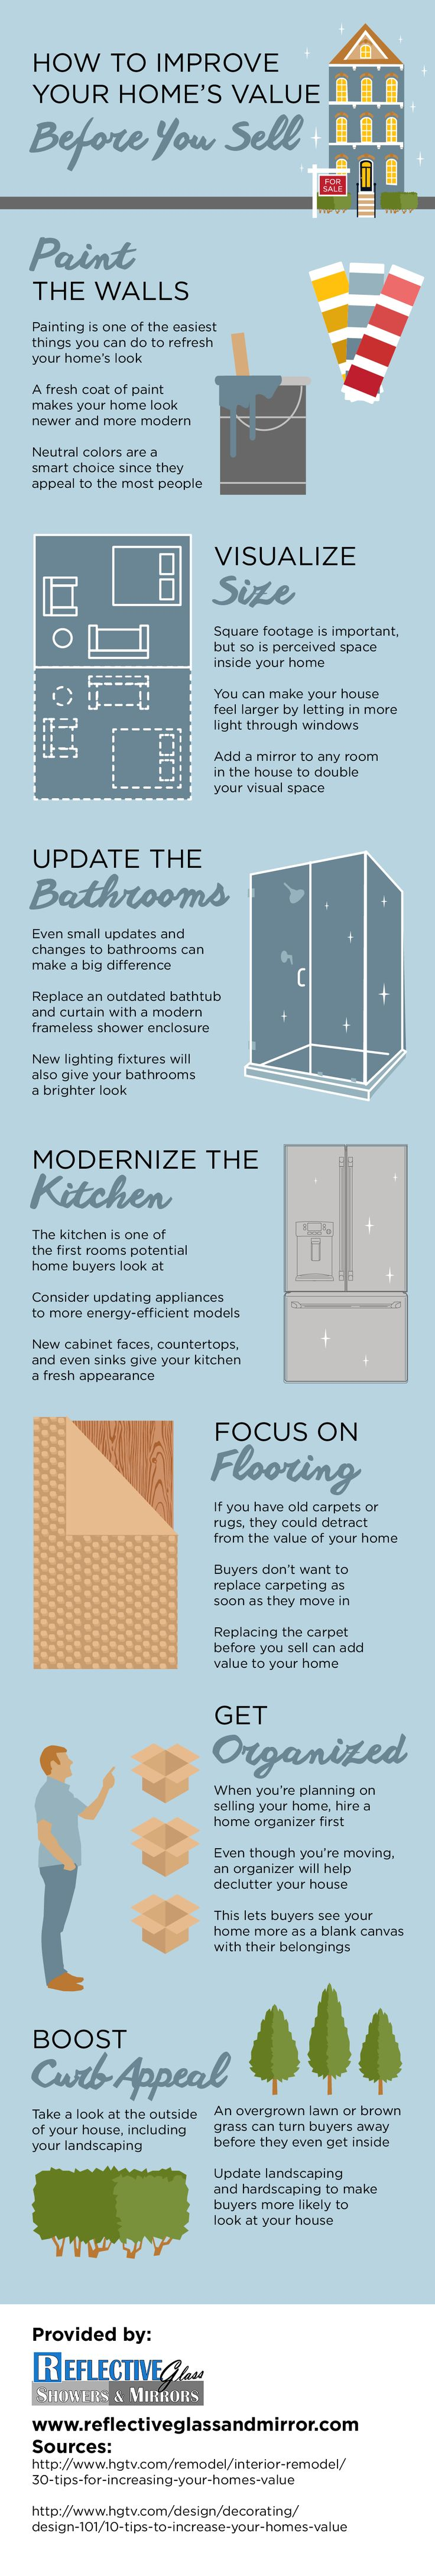 If you re interested in remodeling your home contact us to learn - There Are Both Subtle And Substantial Changes You Can Make In Order To Improve Your Home